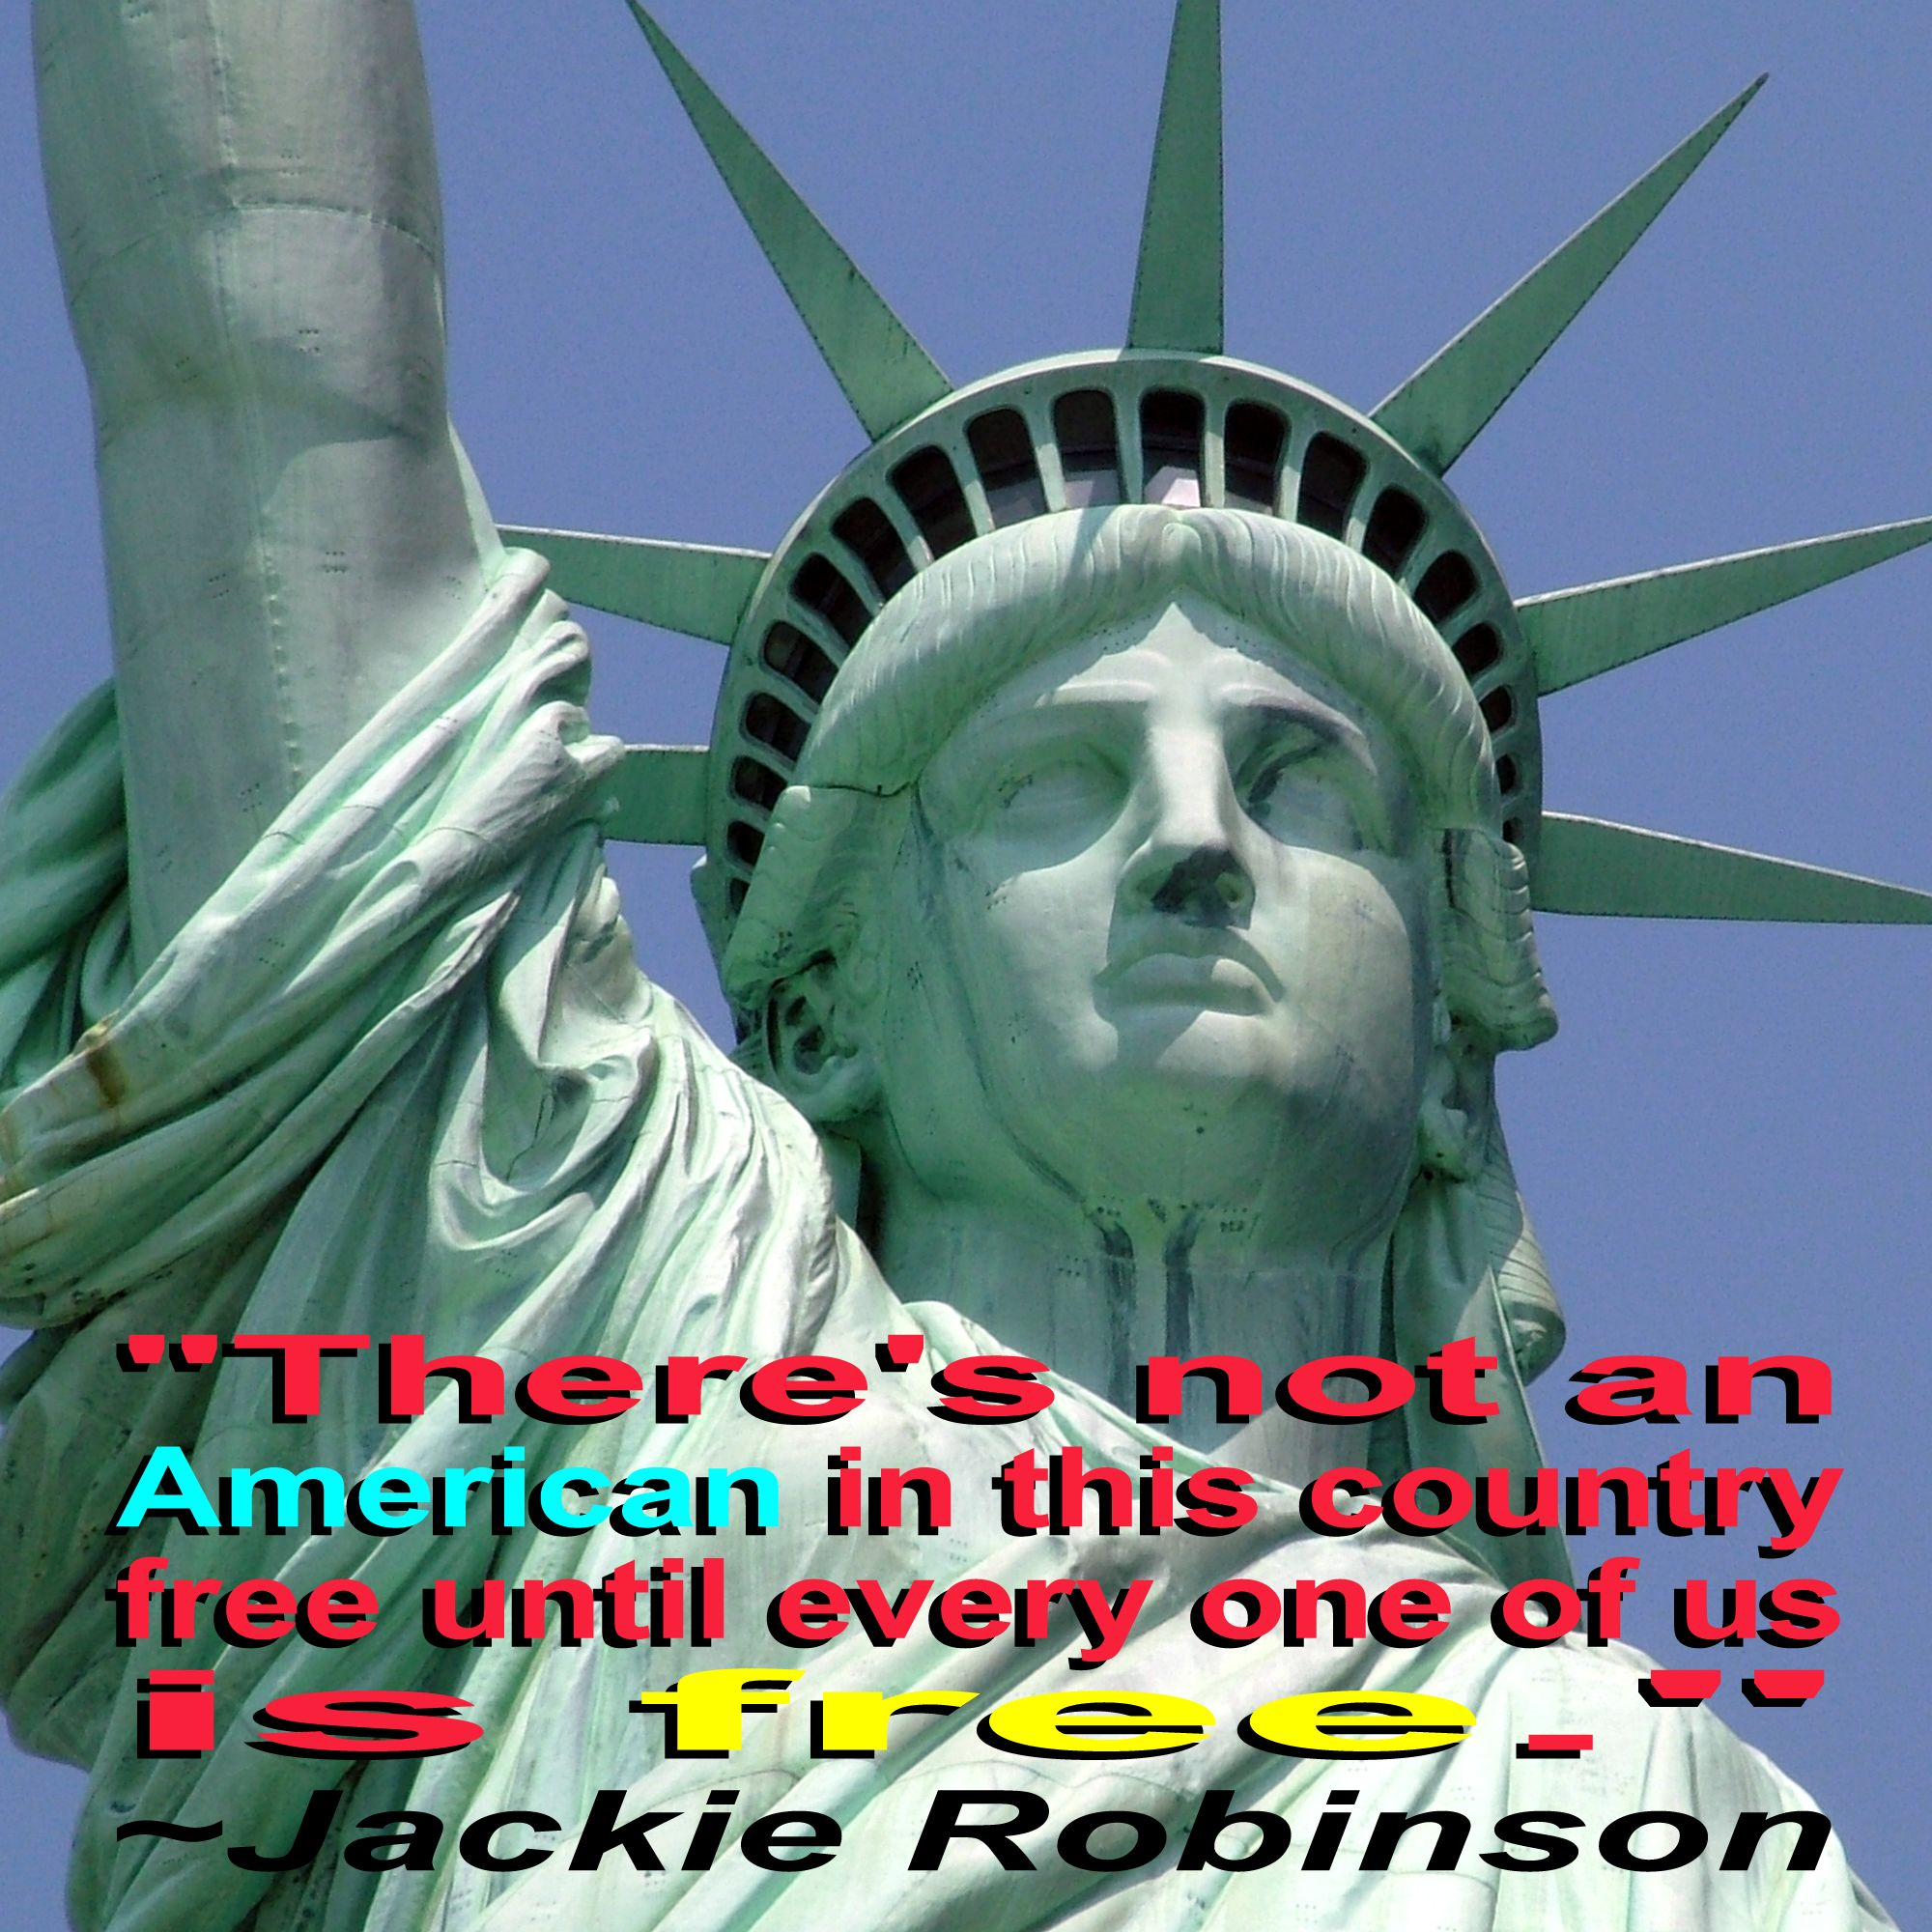 Jackie robinson quote 2 statue of liberty statue liberty